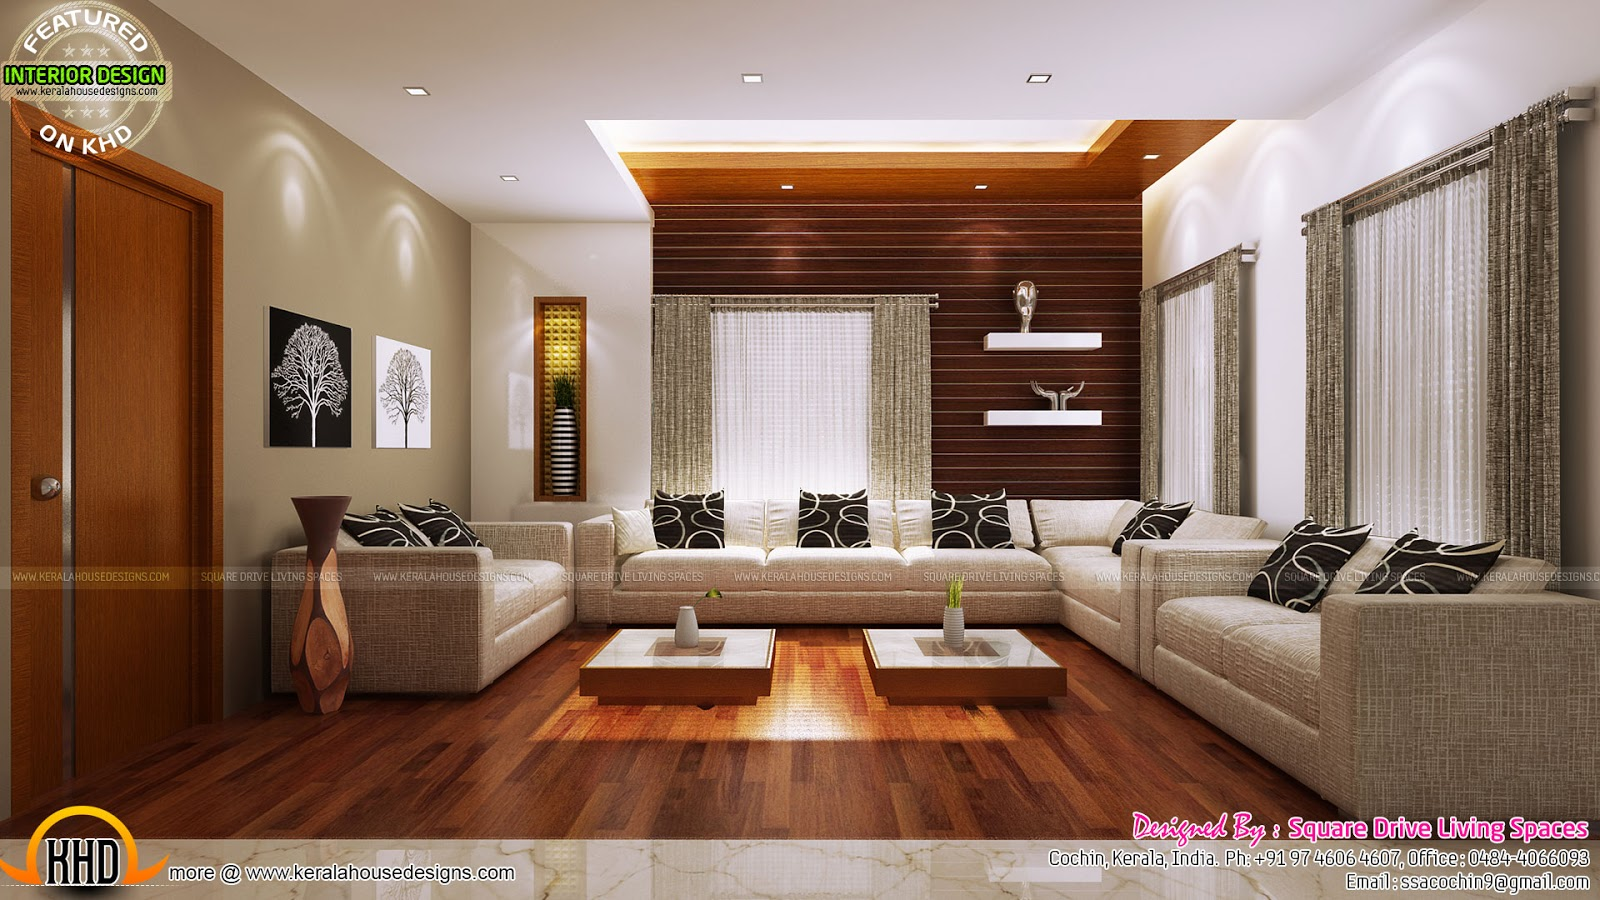 simple interiors for indian homes excellent kerala interior design kerala home design and 25647